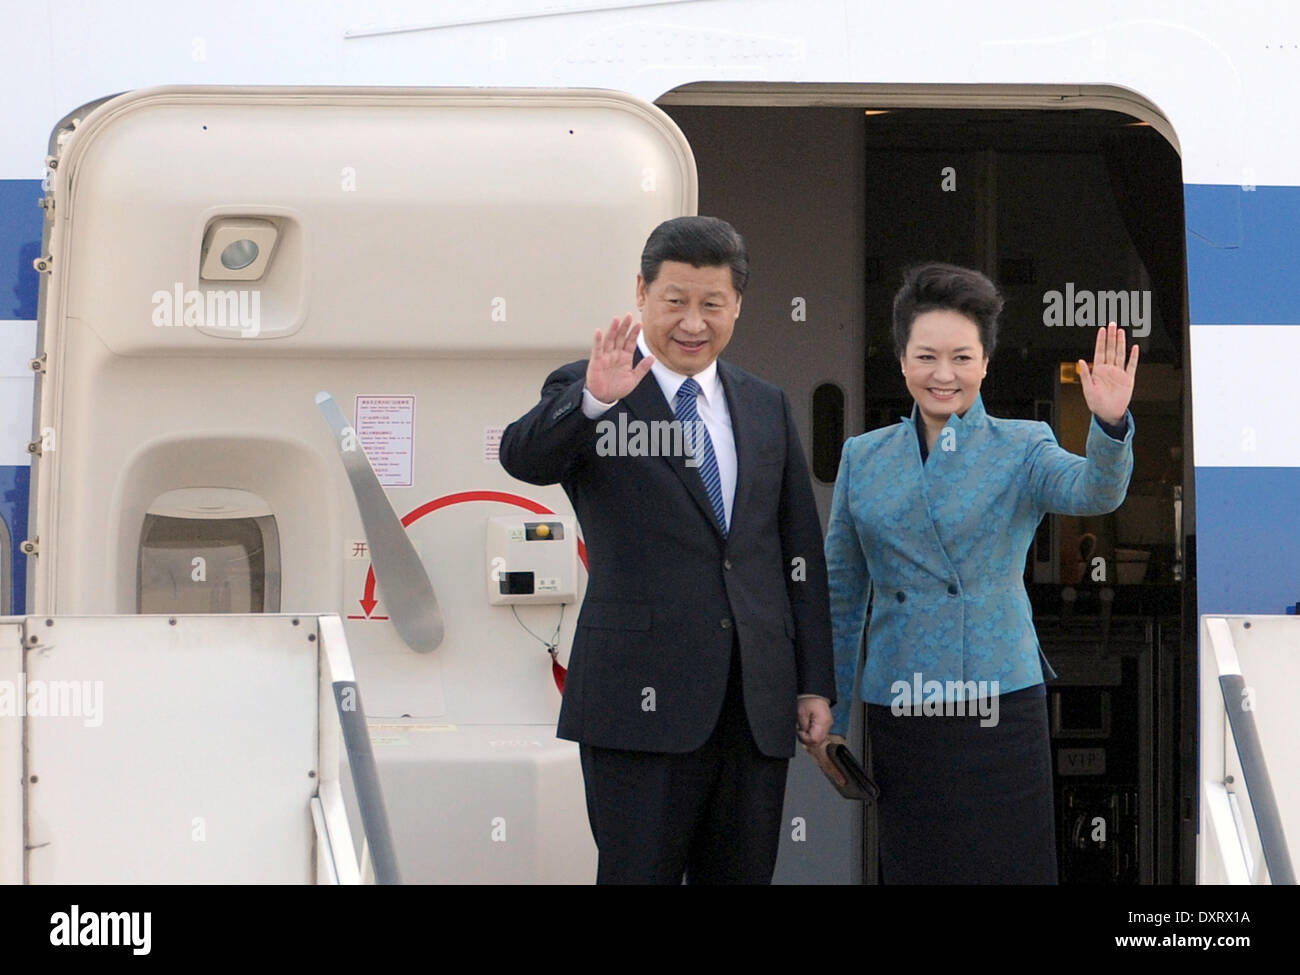 Duesseldorf, Germany. 30th Mar, 2014. Chinese President Xi Jinping (L) and his wife Peng Liyuan bis farewell at the airport in Duesseldorf, Germany, 30 March 2014. Xi completed his visit to Germany with a trip to the German state of North Rhine-Westphalia. Photo: Caroline Seidel/dpa/Alamy Live News - Stock Image